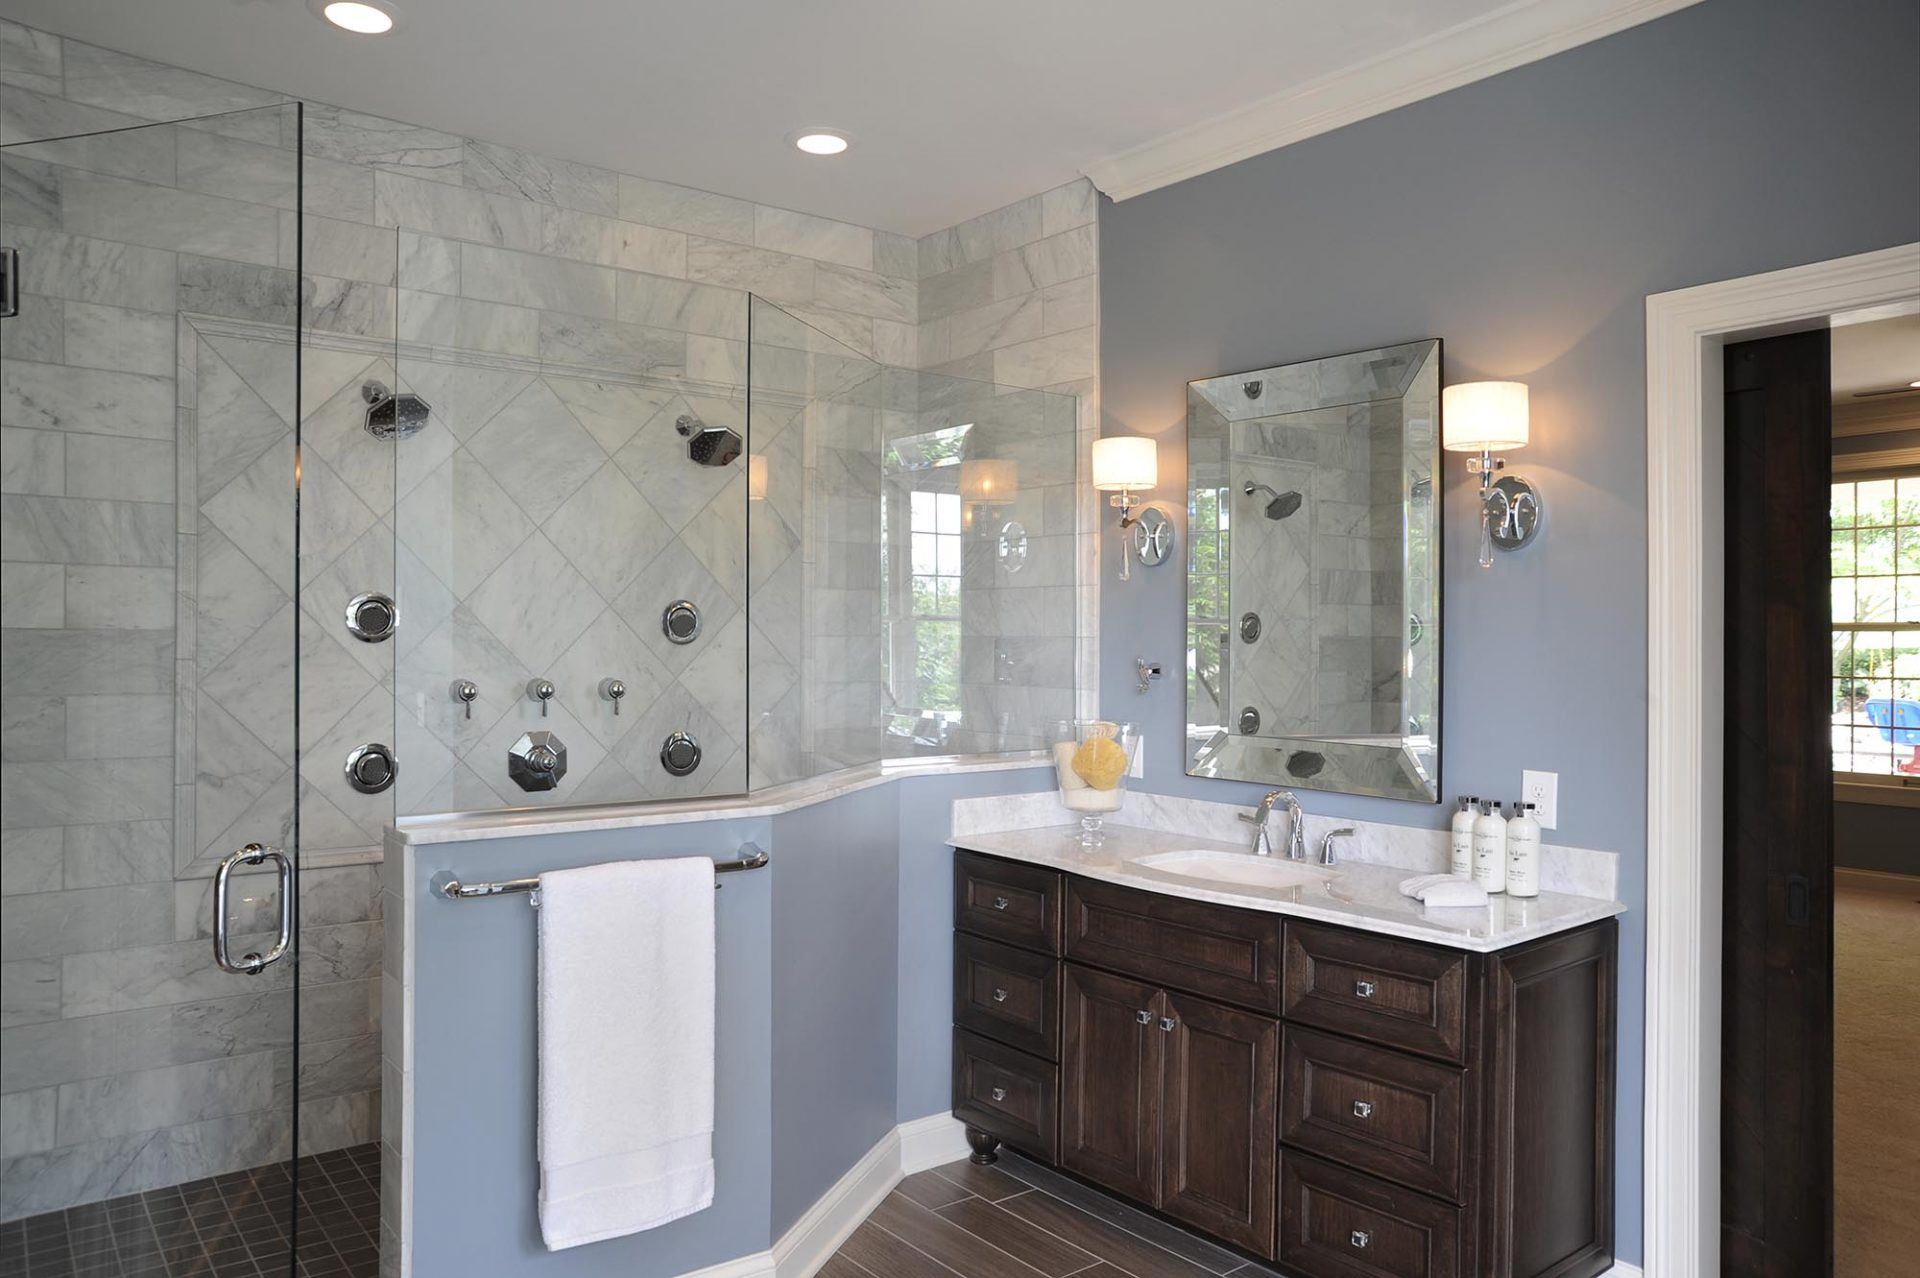 Master Bath, Westerville, Dave Fox, Remodel, freestanding tub,glass shower, trim, wood flooring, chandelier